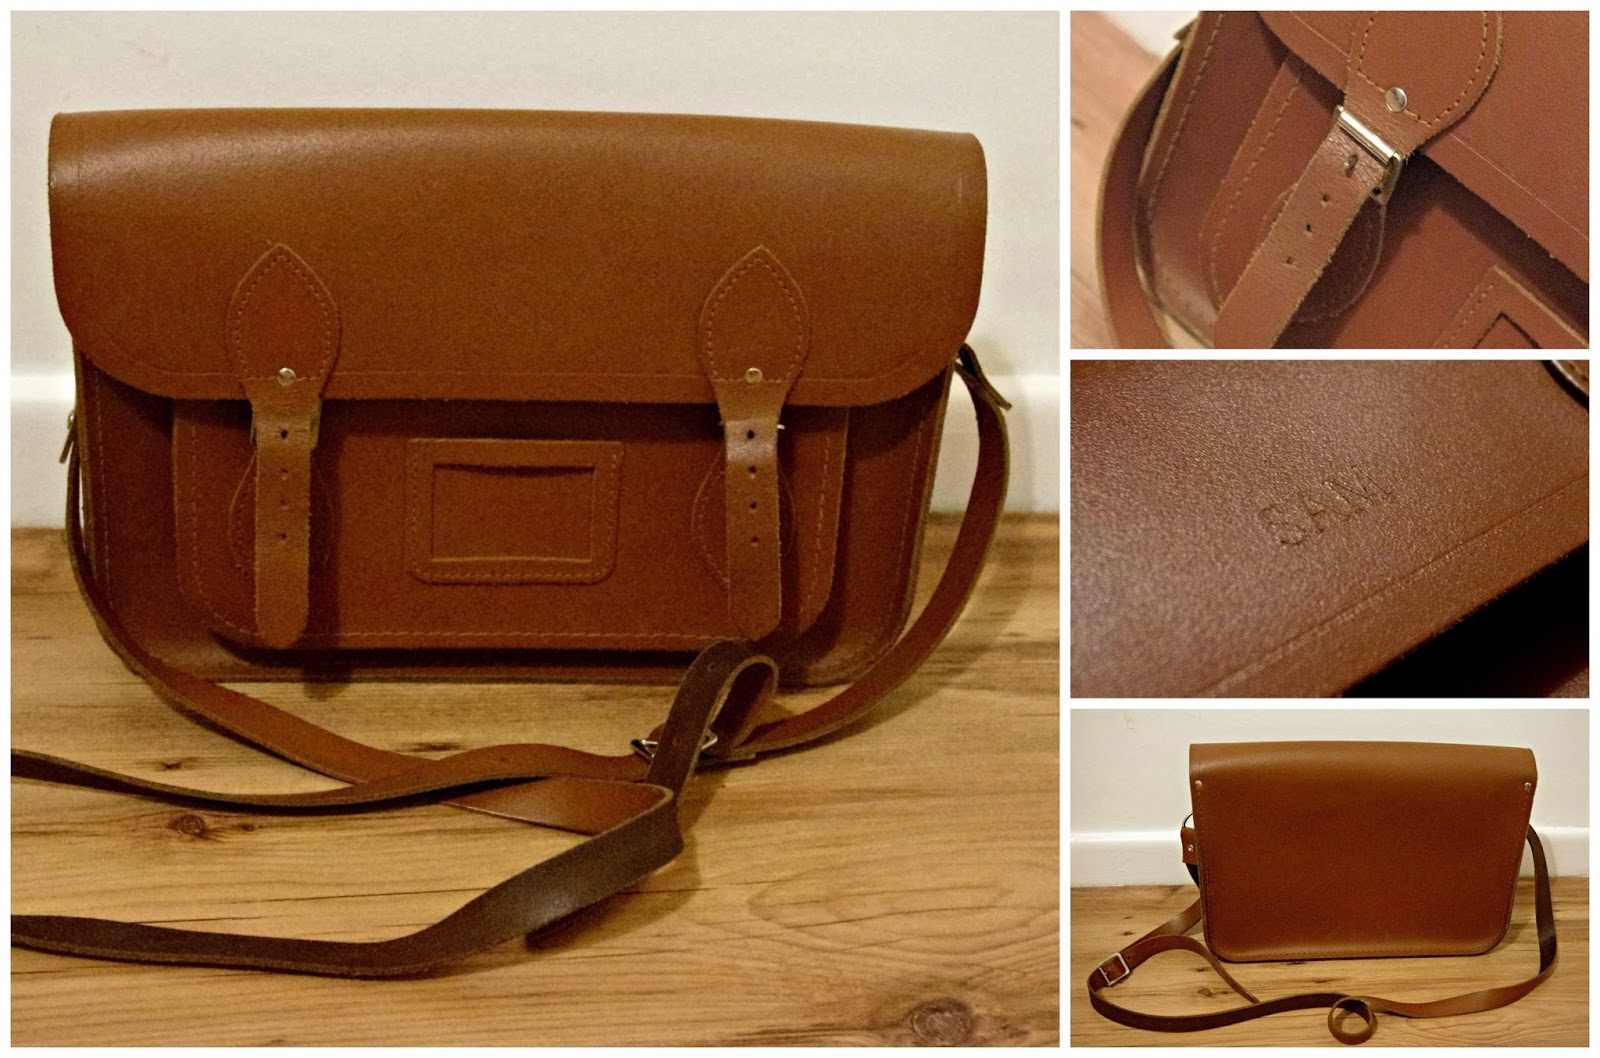 Tan Cambridge Satchel Company Satchel